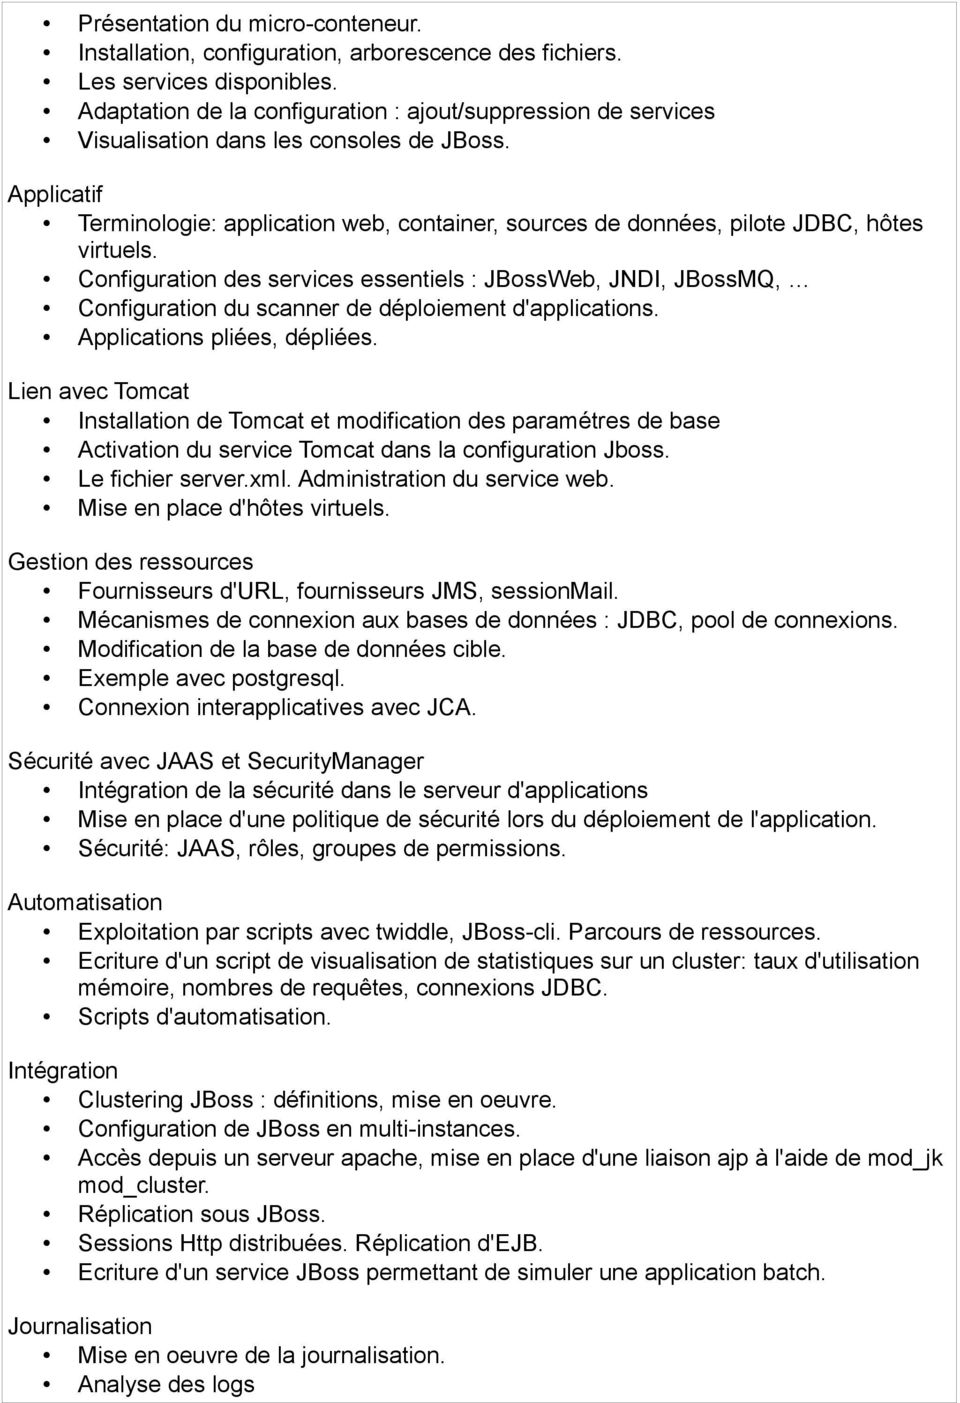 Applicatif Terminologie: application web, container, sources de données, pilote JDBC, hôtes virtuels.